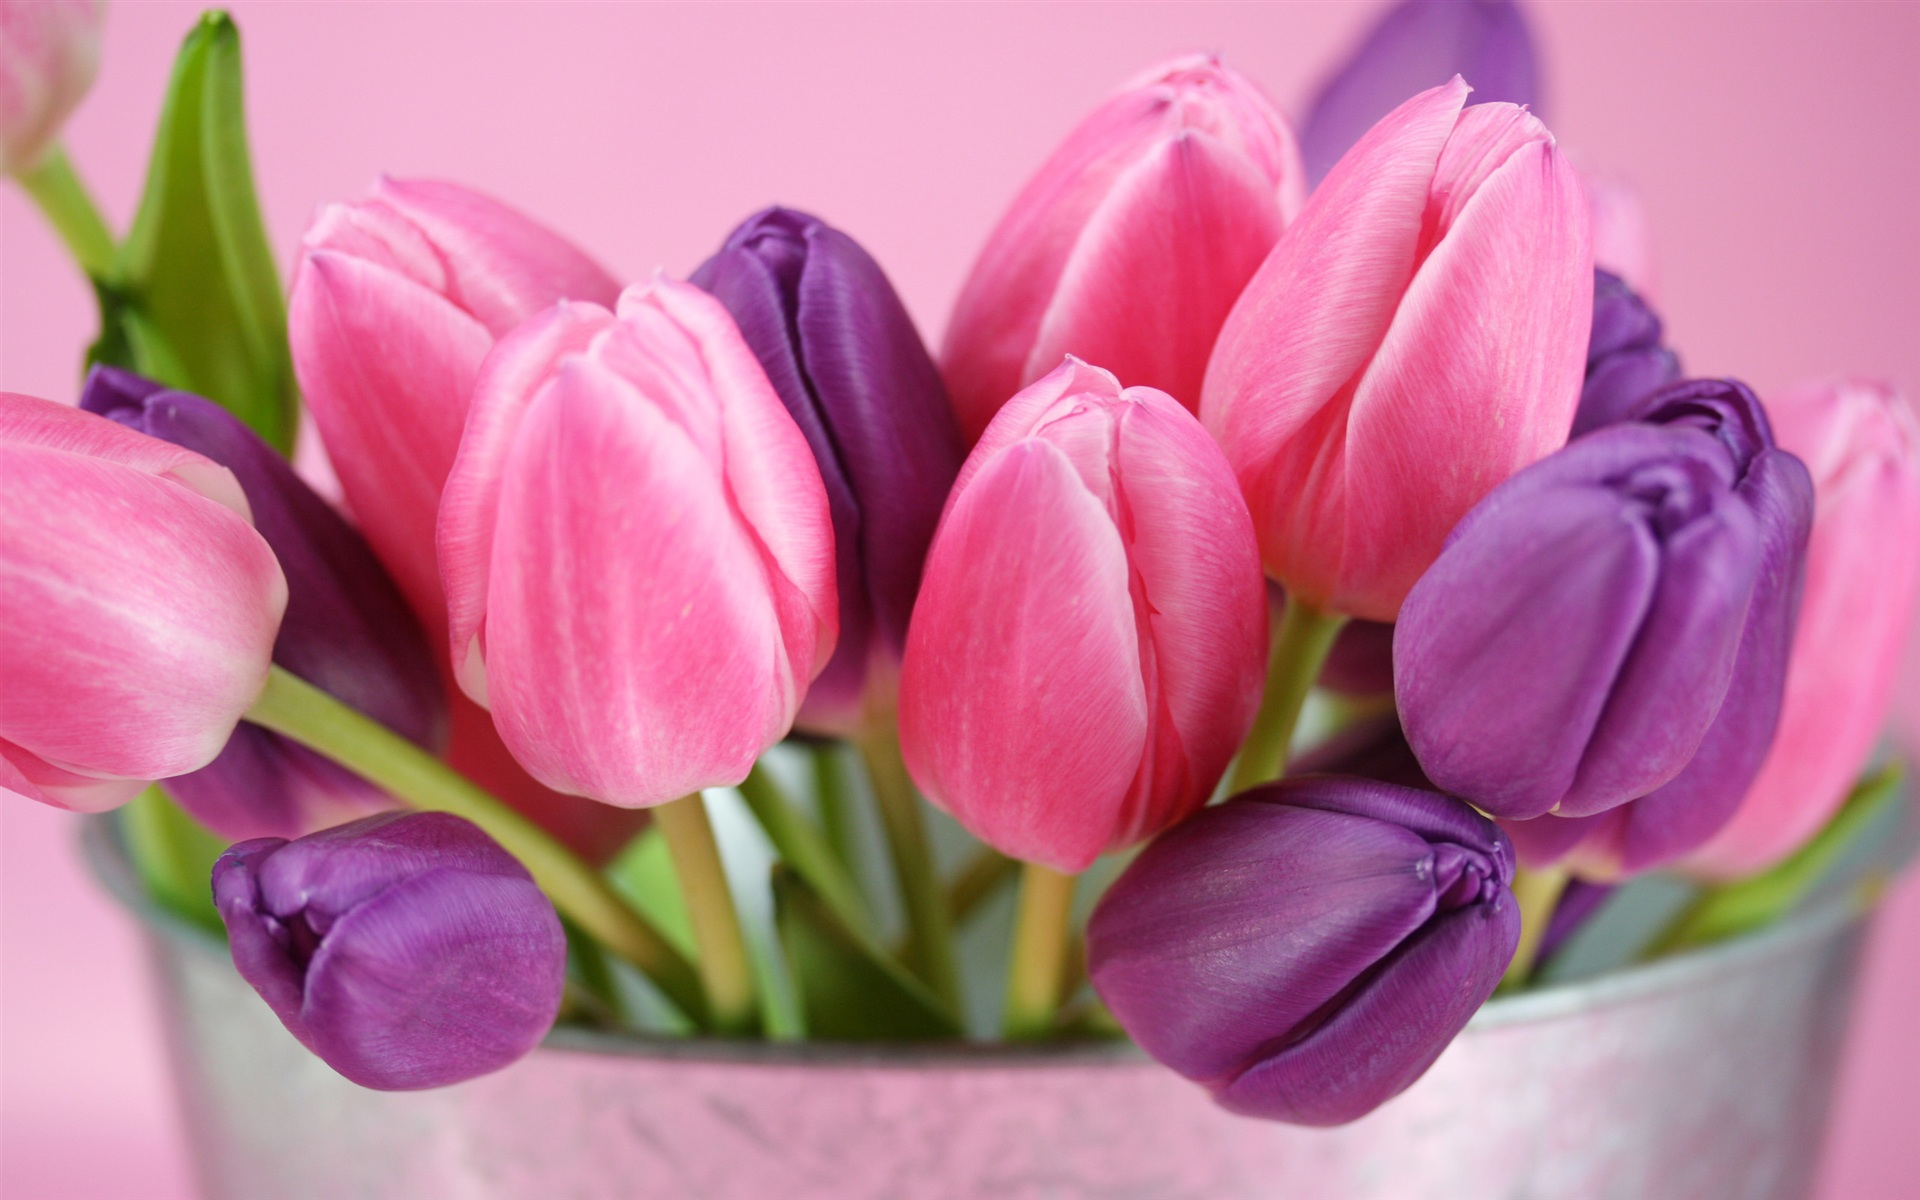 Pink and purple tulips flowers Wallpapers Wallpaper 19201200 HD 1920x1200